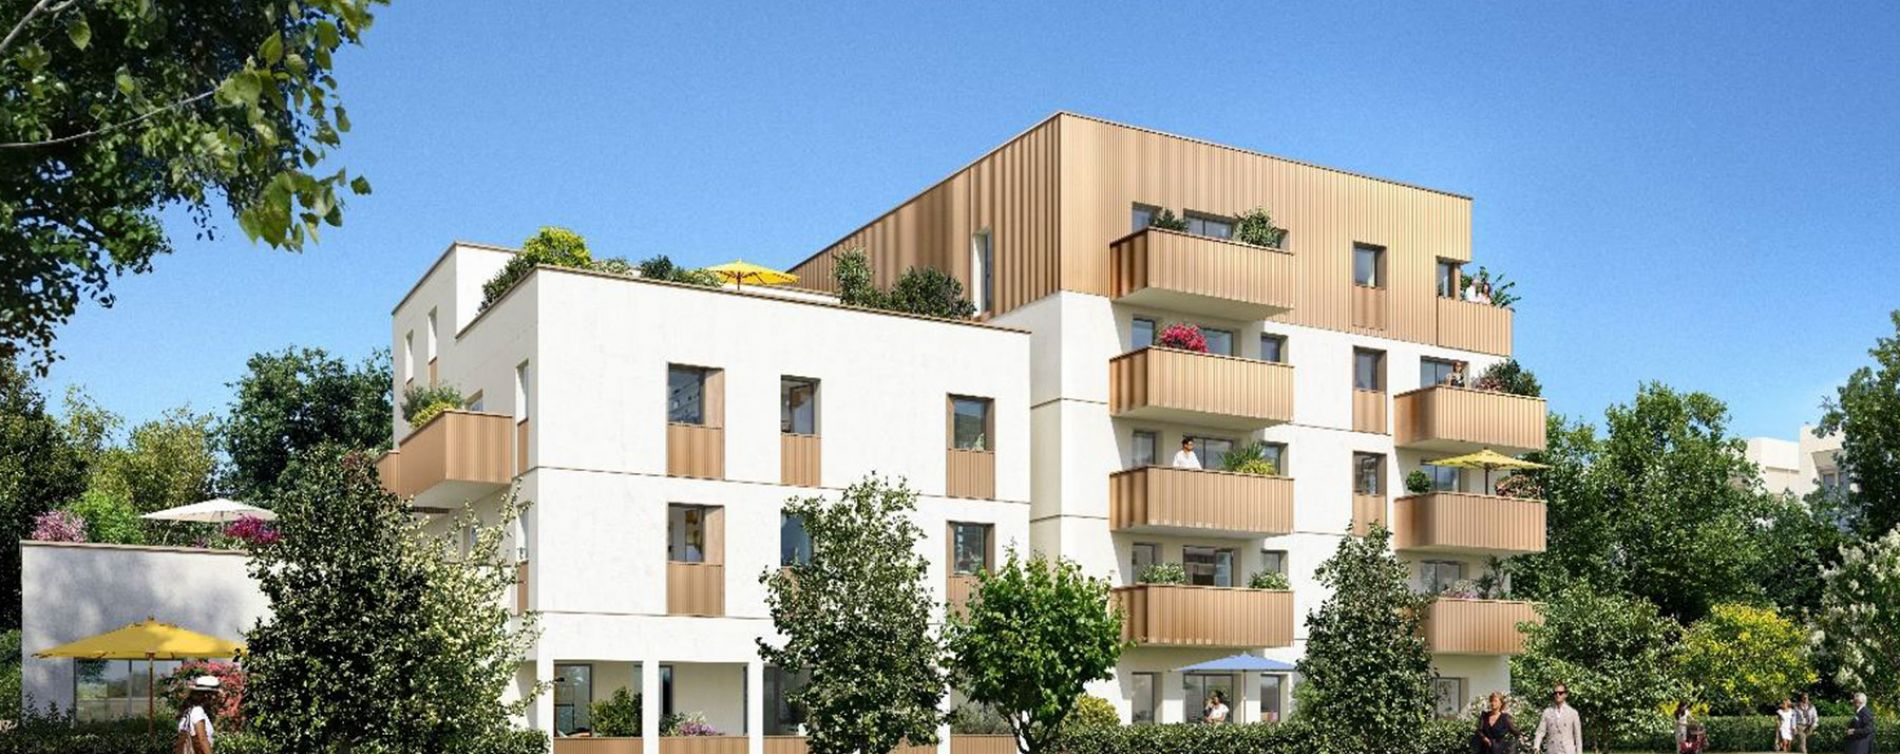 Résidence Grand Air - Appartements à Montlouis-sur-Loire